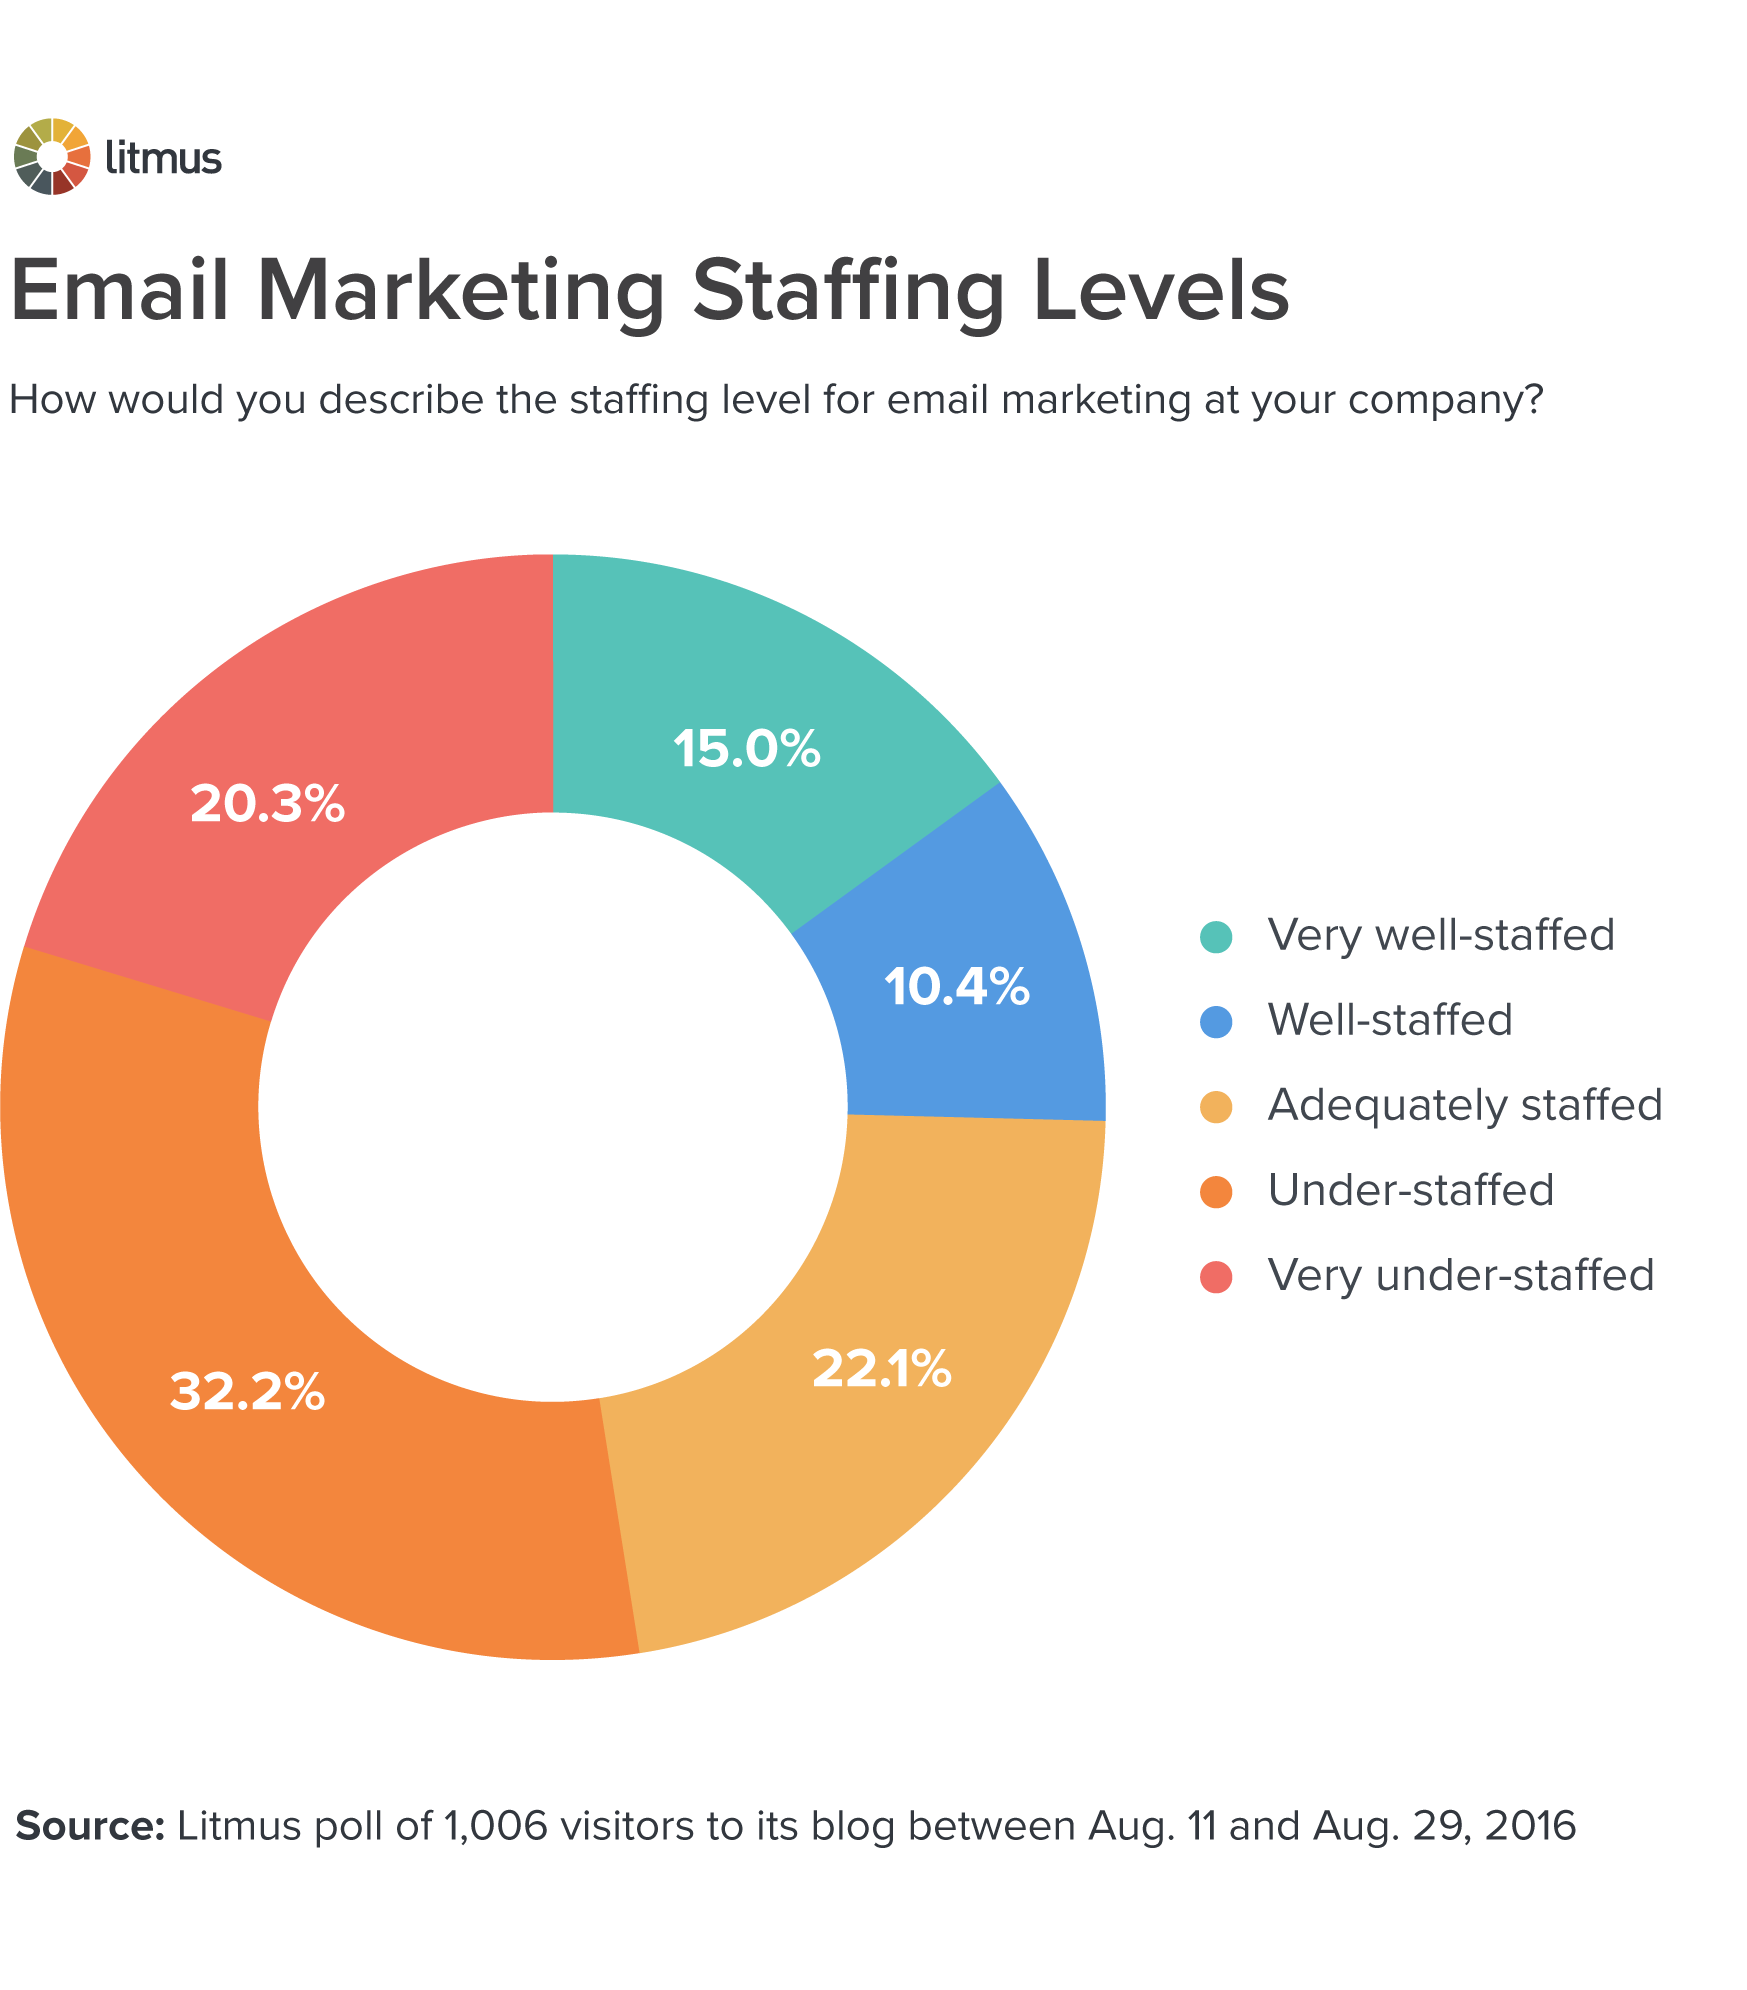 Email Marketing Staffing Levels